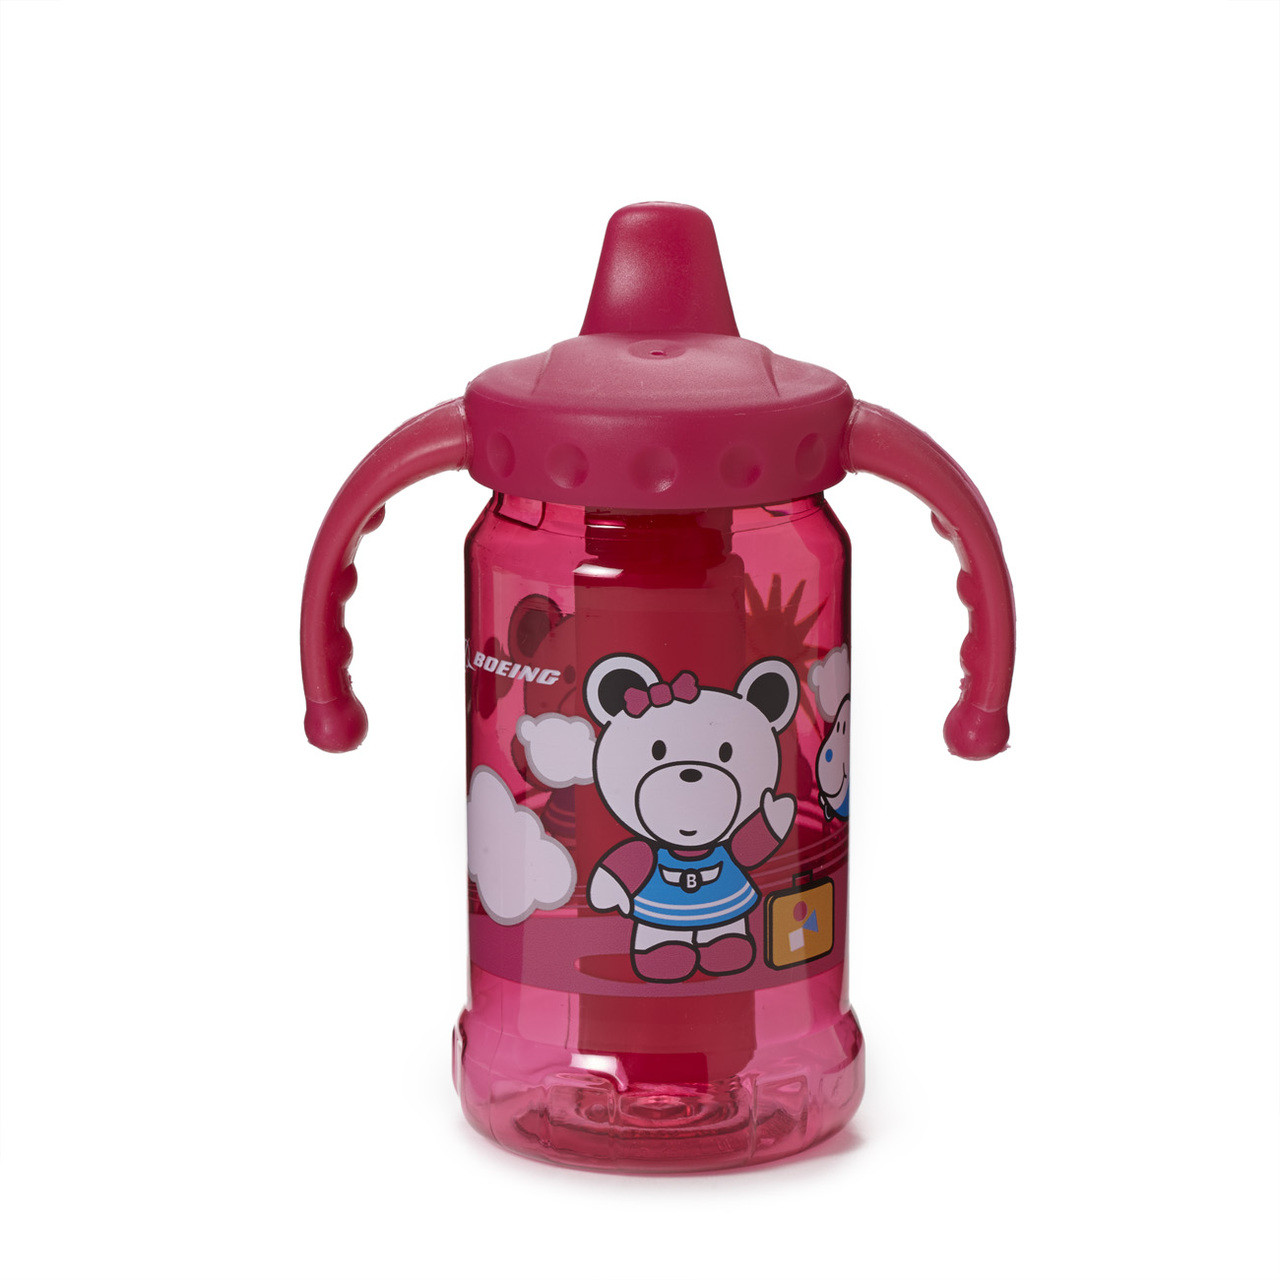 Boeing Jetsi Sippy Cup